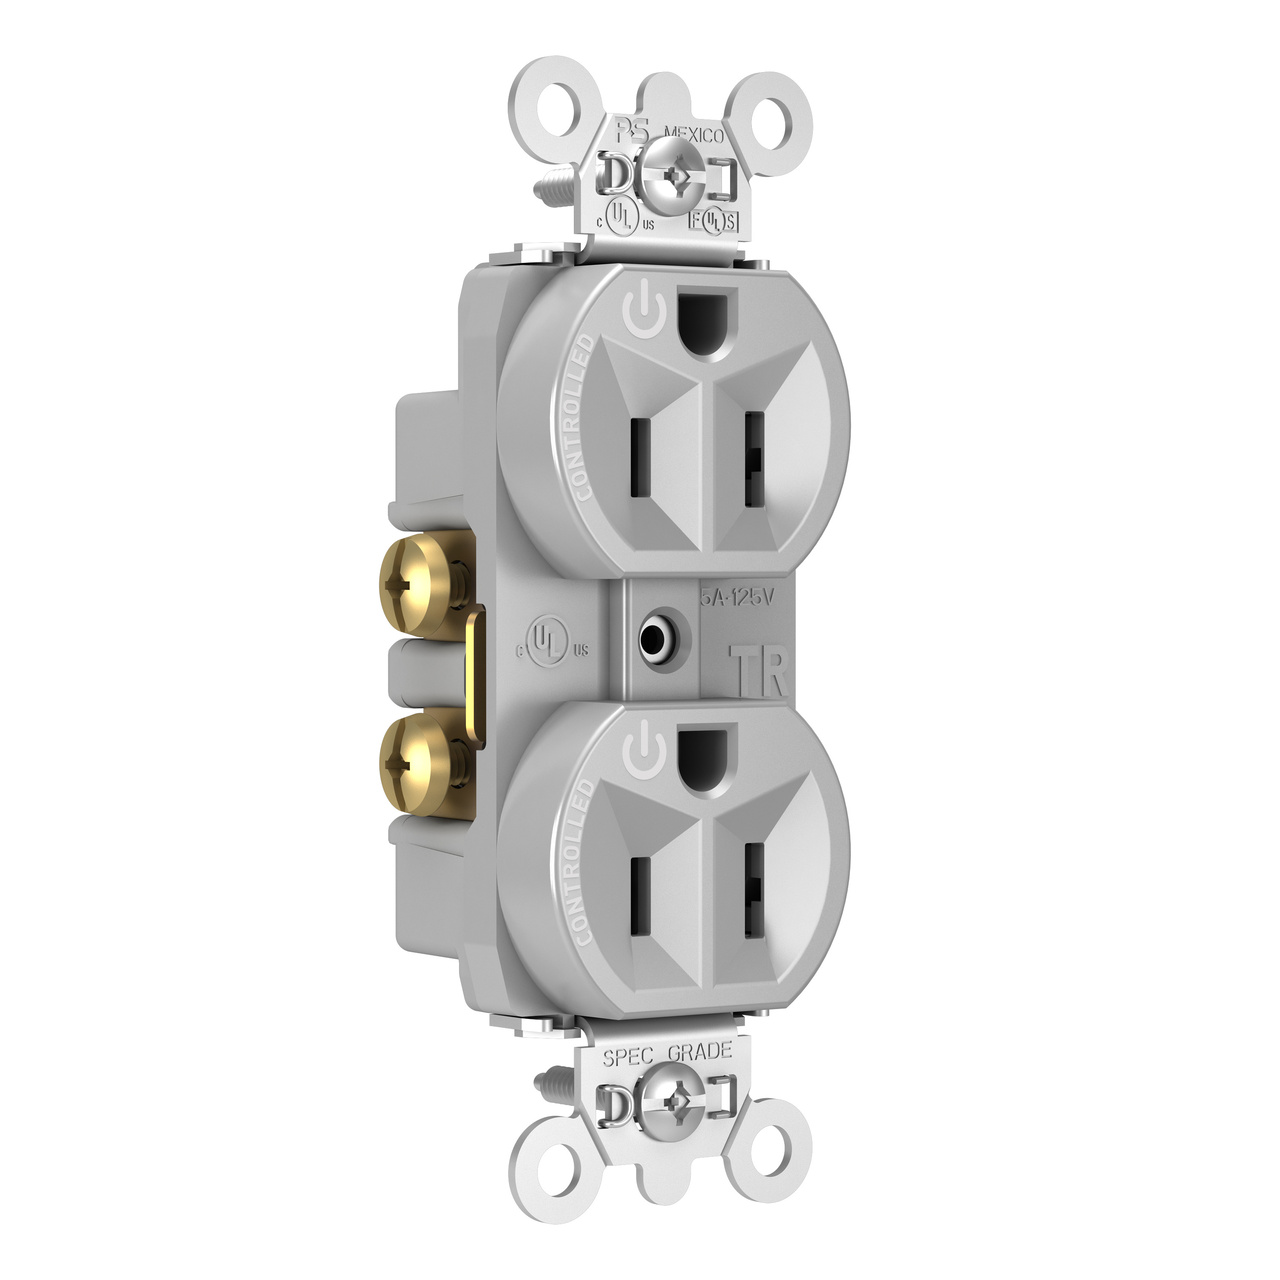 Hard-Use Spec Grade Plug Load Controllable Receptacle, 15A, 125V,Gray